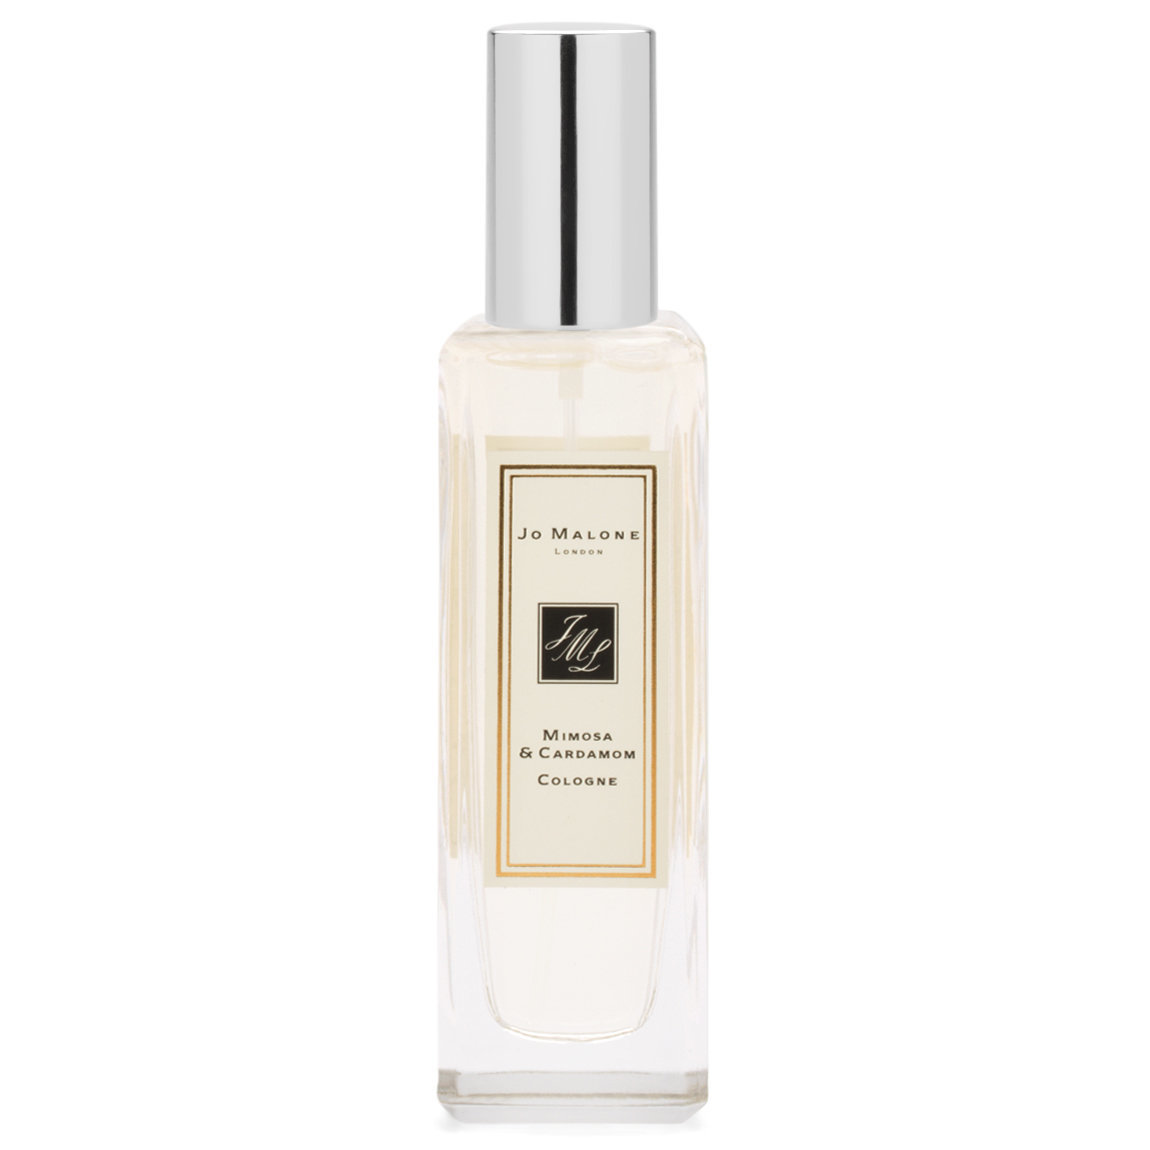 Jo Malone London Mimosa & Cardamom Cologne 30ml product smear.